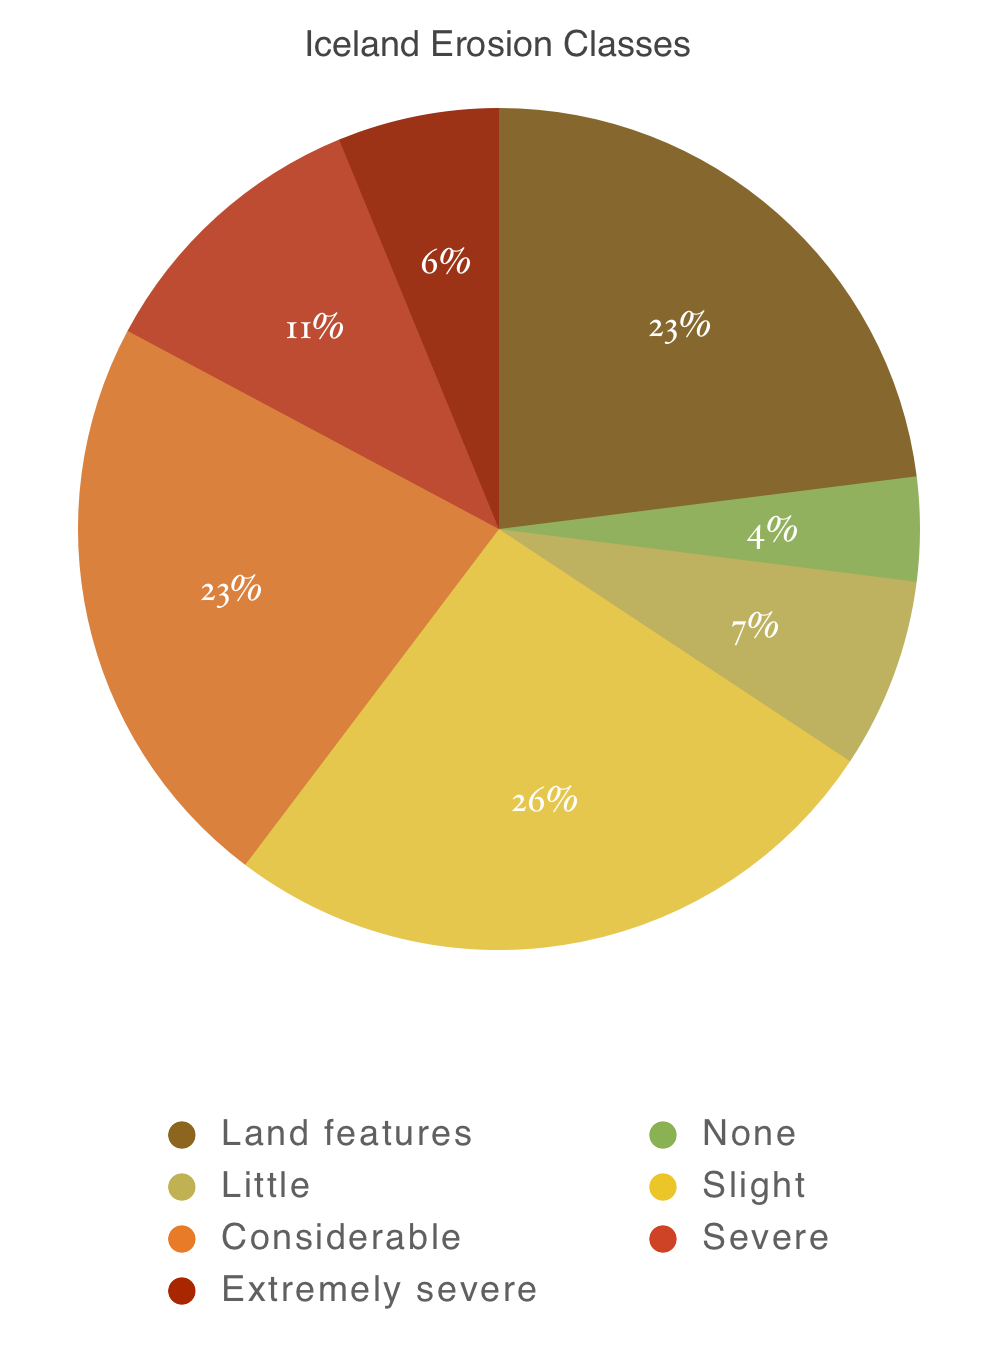 pie graph of Iceland soil erosion classes from none to extremely severe, also including land features